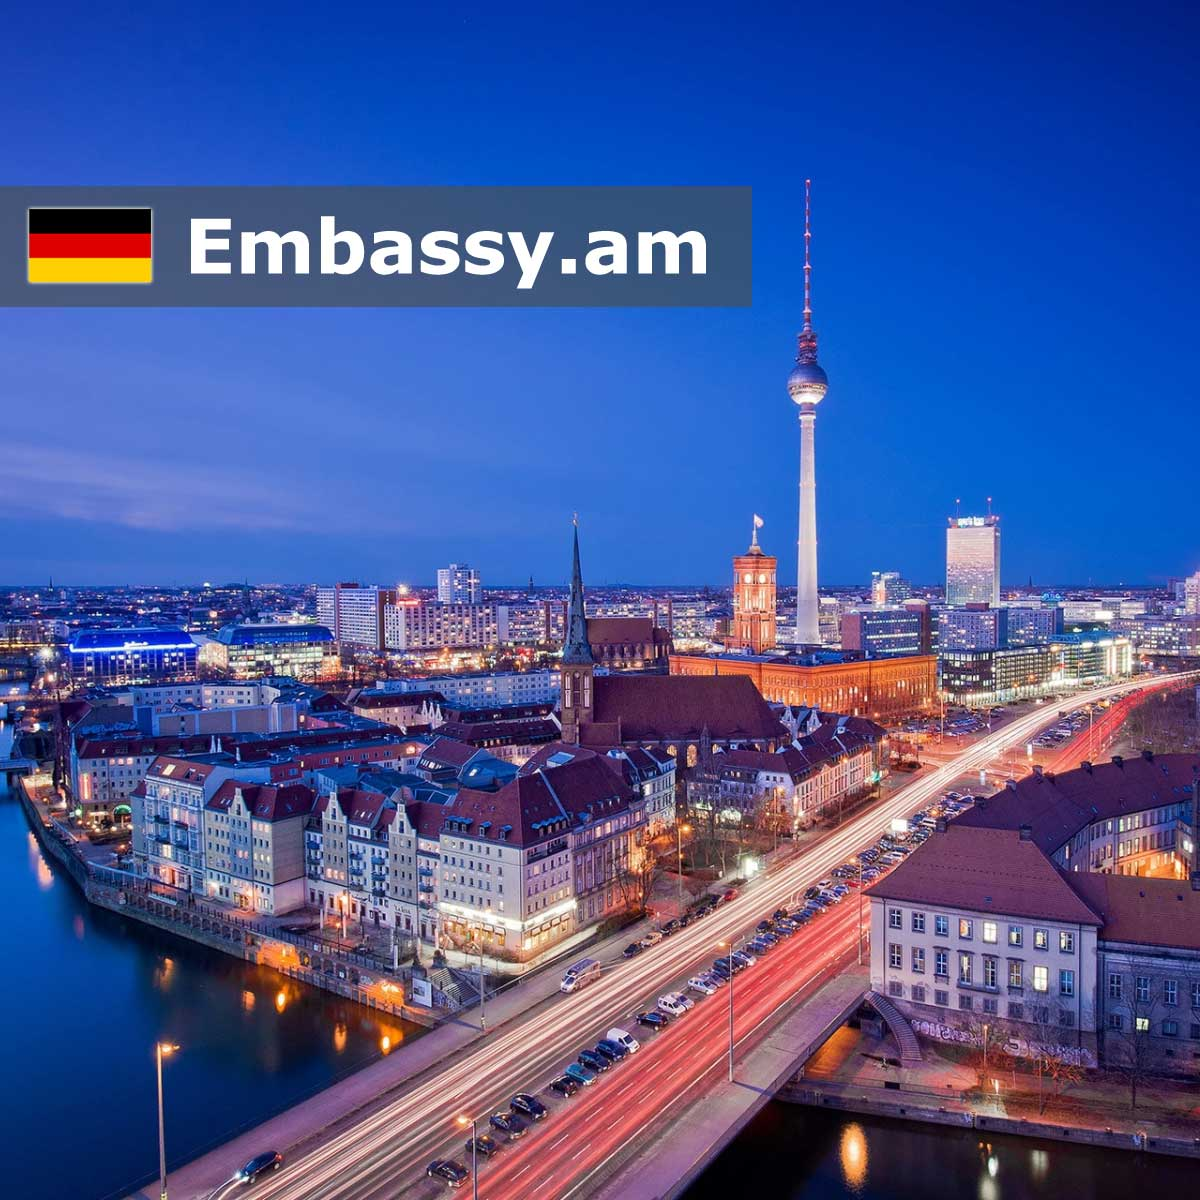 Hotels in Germany - Embassy.am